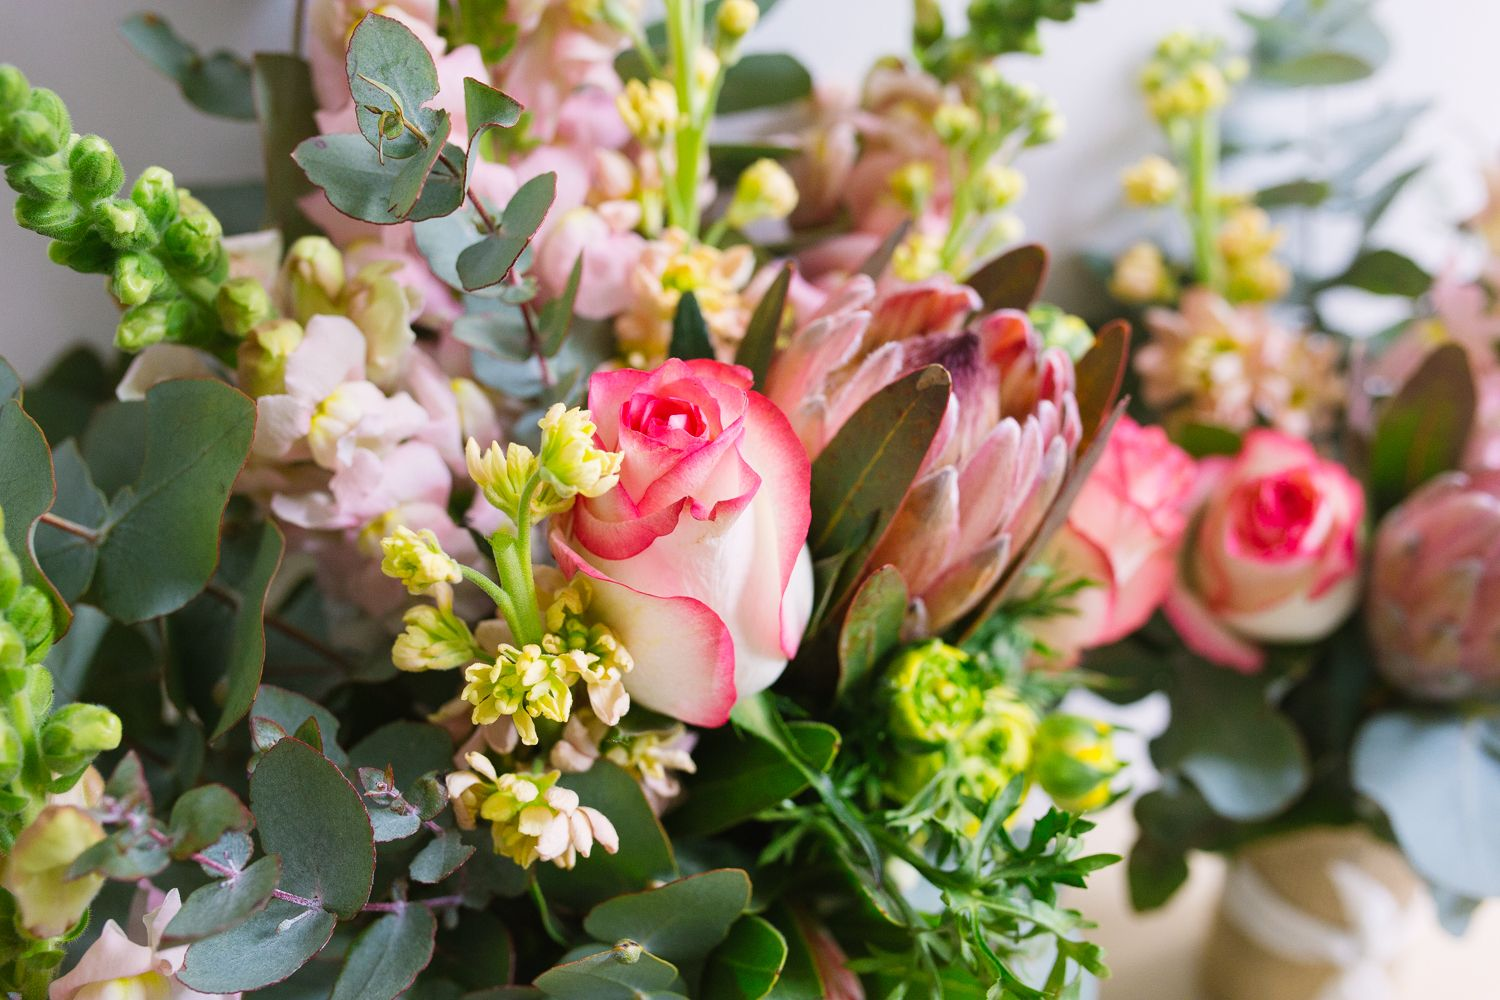 Flowers by thelittlemarketbunch Photo by lizzieskyllas